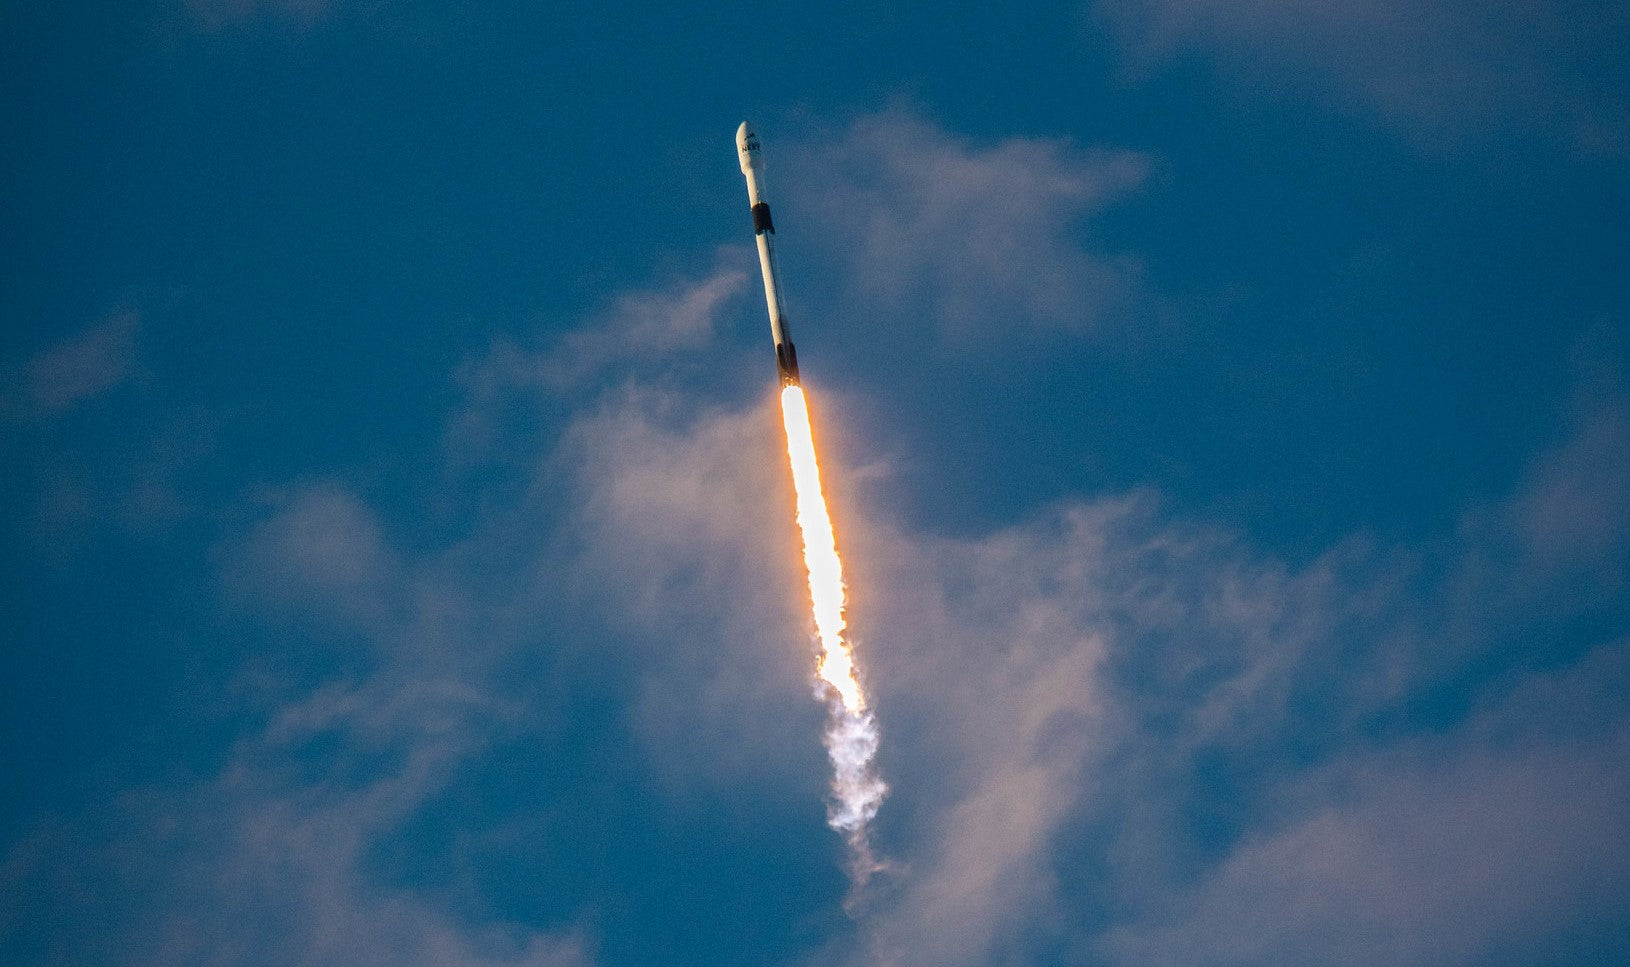 U.S. Space Force 45th Weather Squadron forecasts conditions for SpaceX Starlink mission